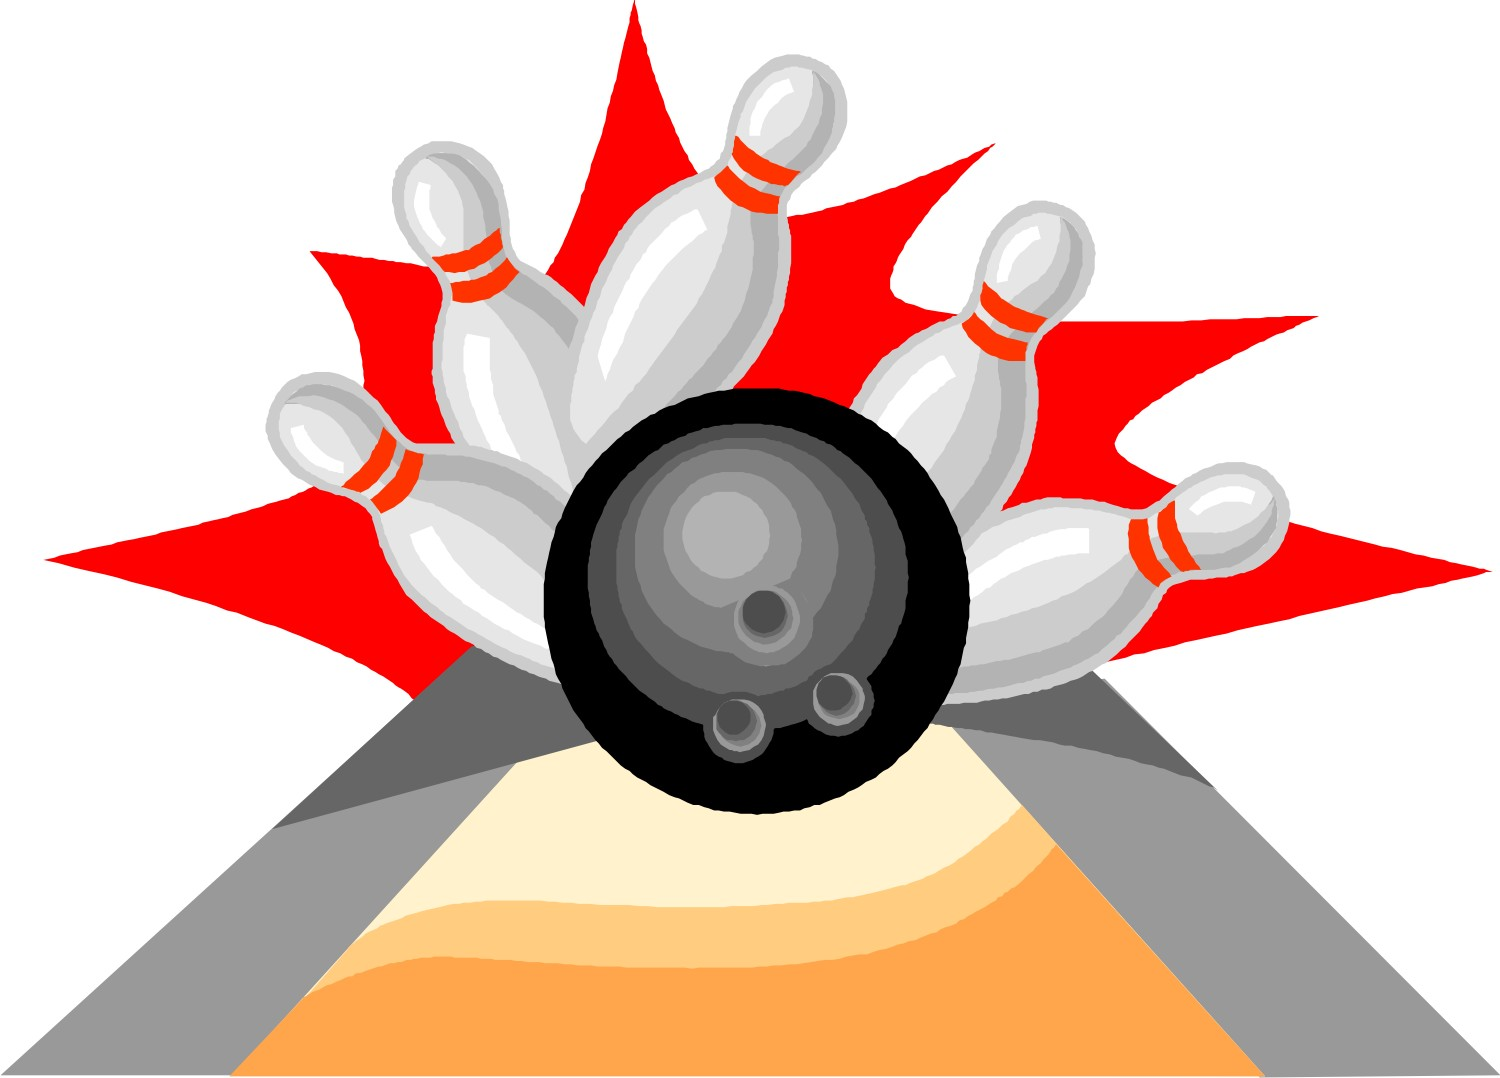 12 Bowling Clip Art Icon Images